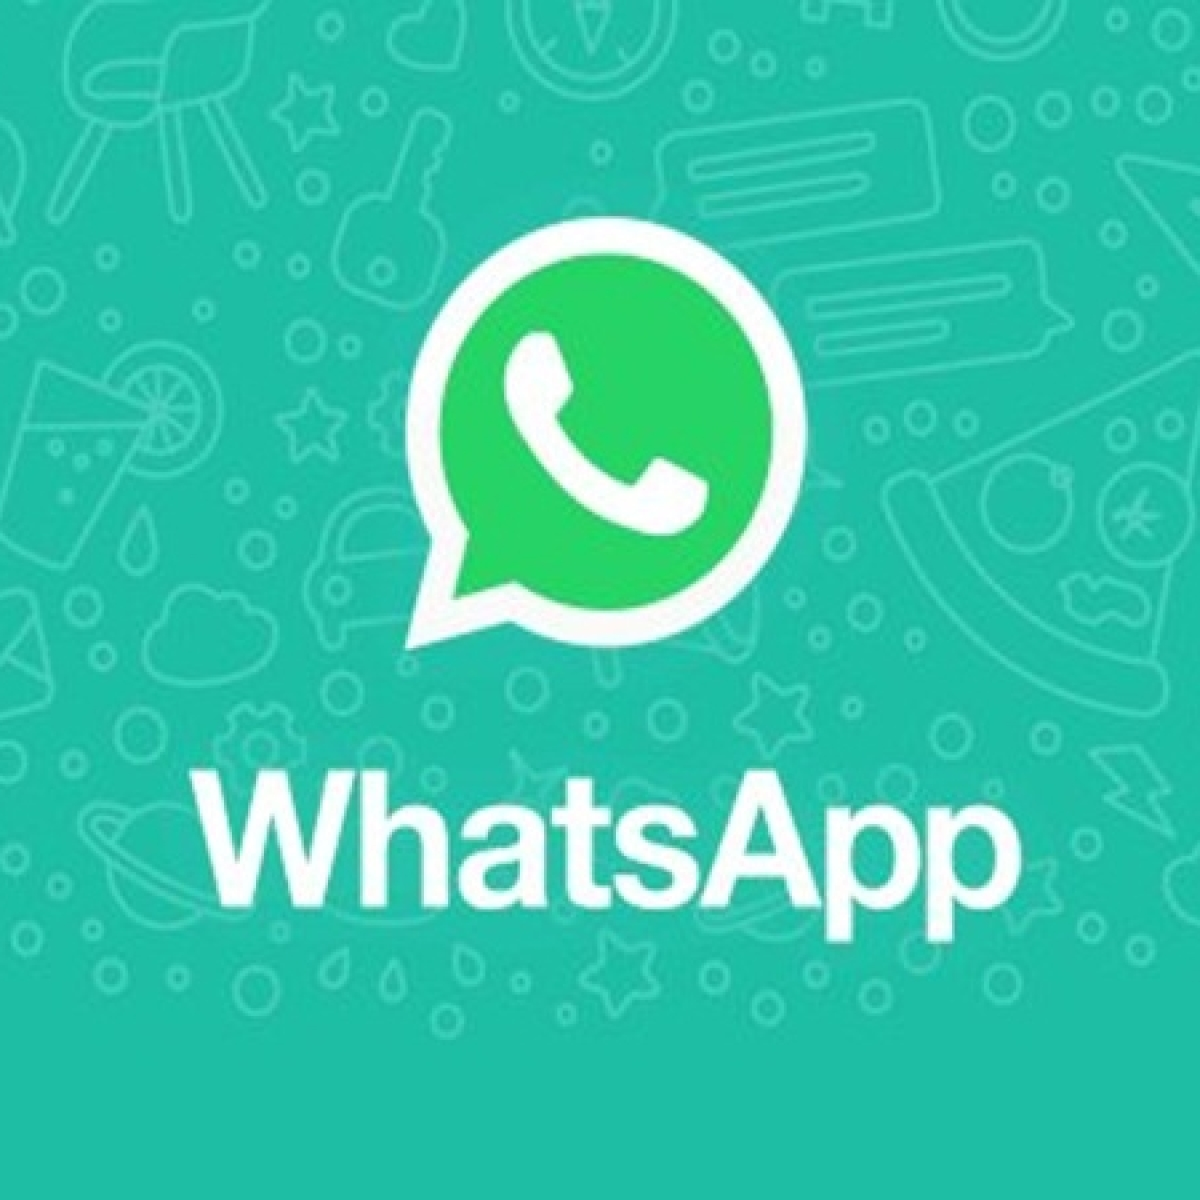 WhatsApp launches 'Check it before you share it' campaign against COVID-19 misinformation in India